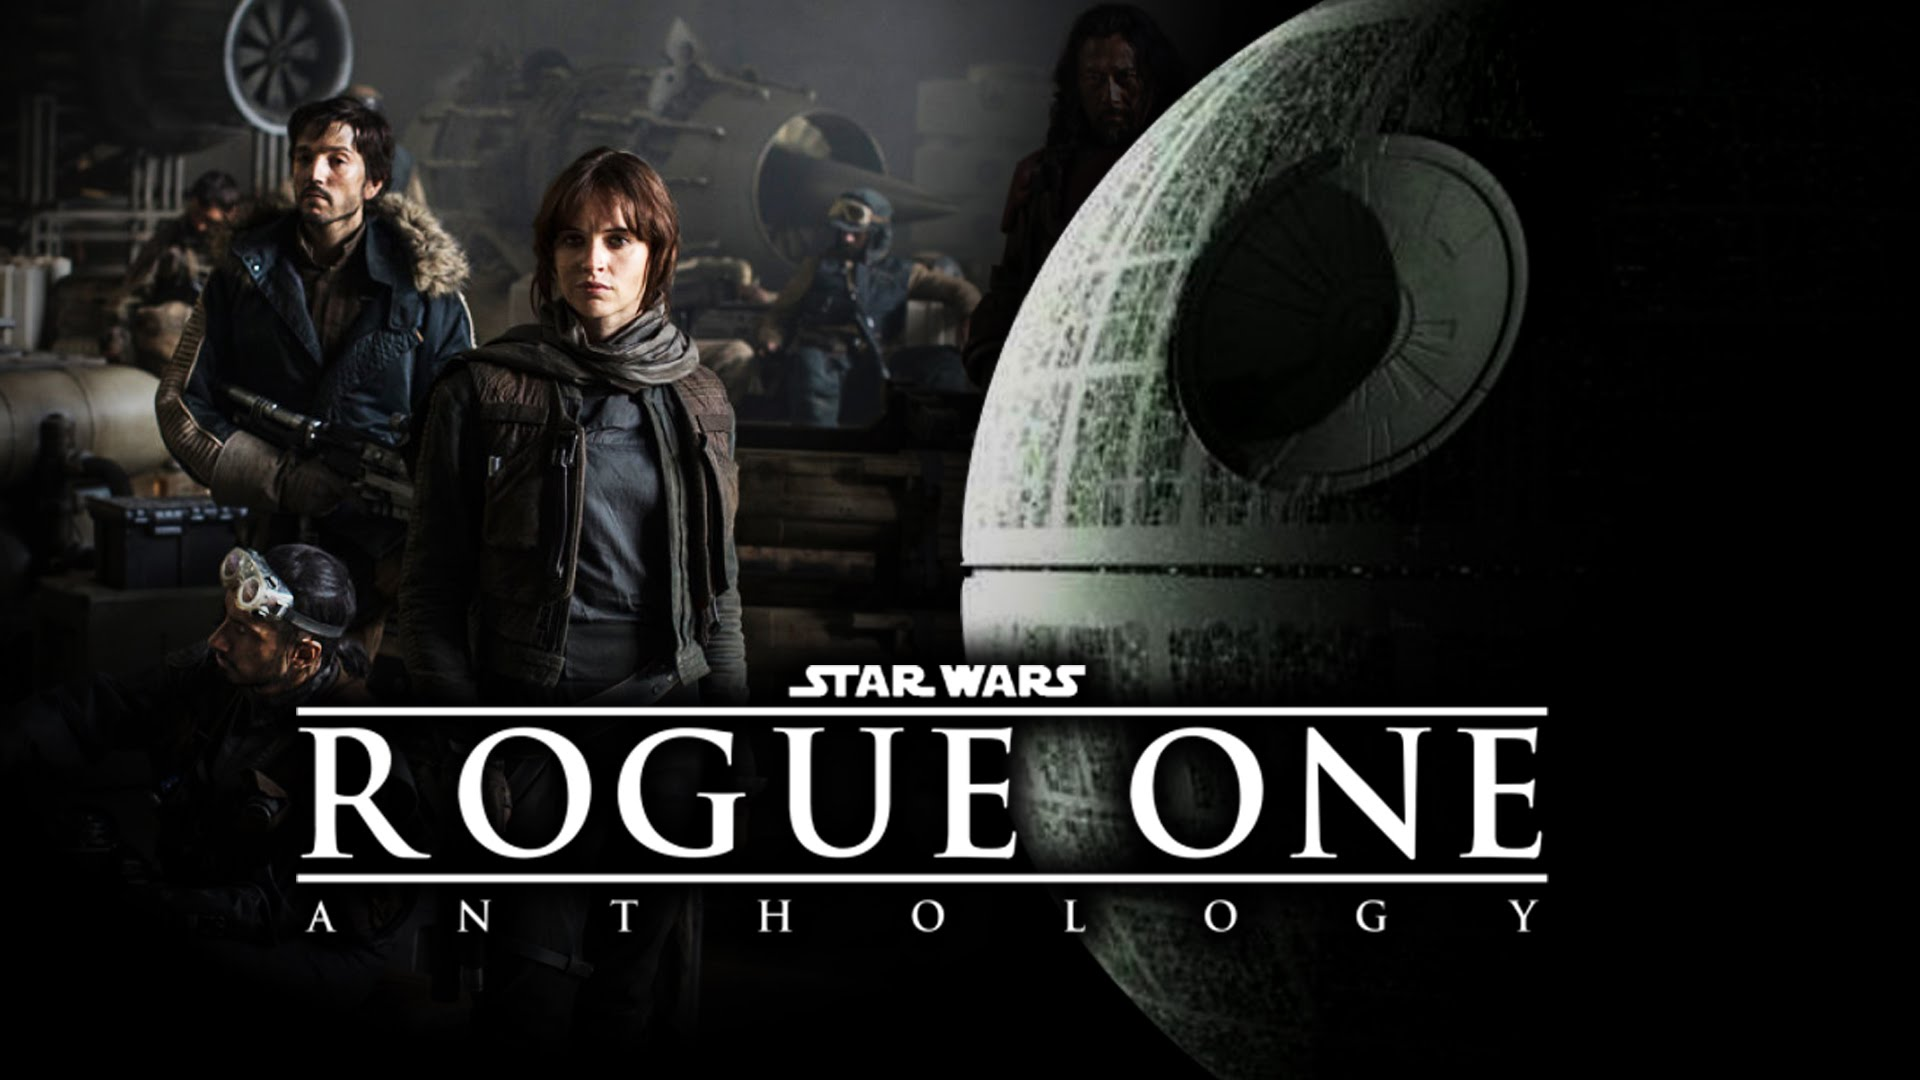 Star Wars Rogue One Crítica Sin Spoilers Definitiva Sexta Butaca